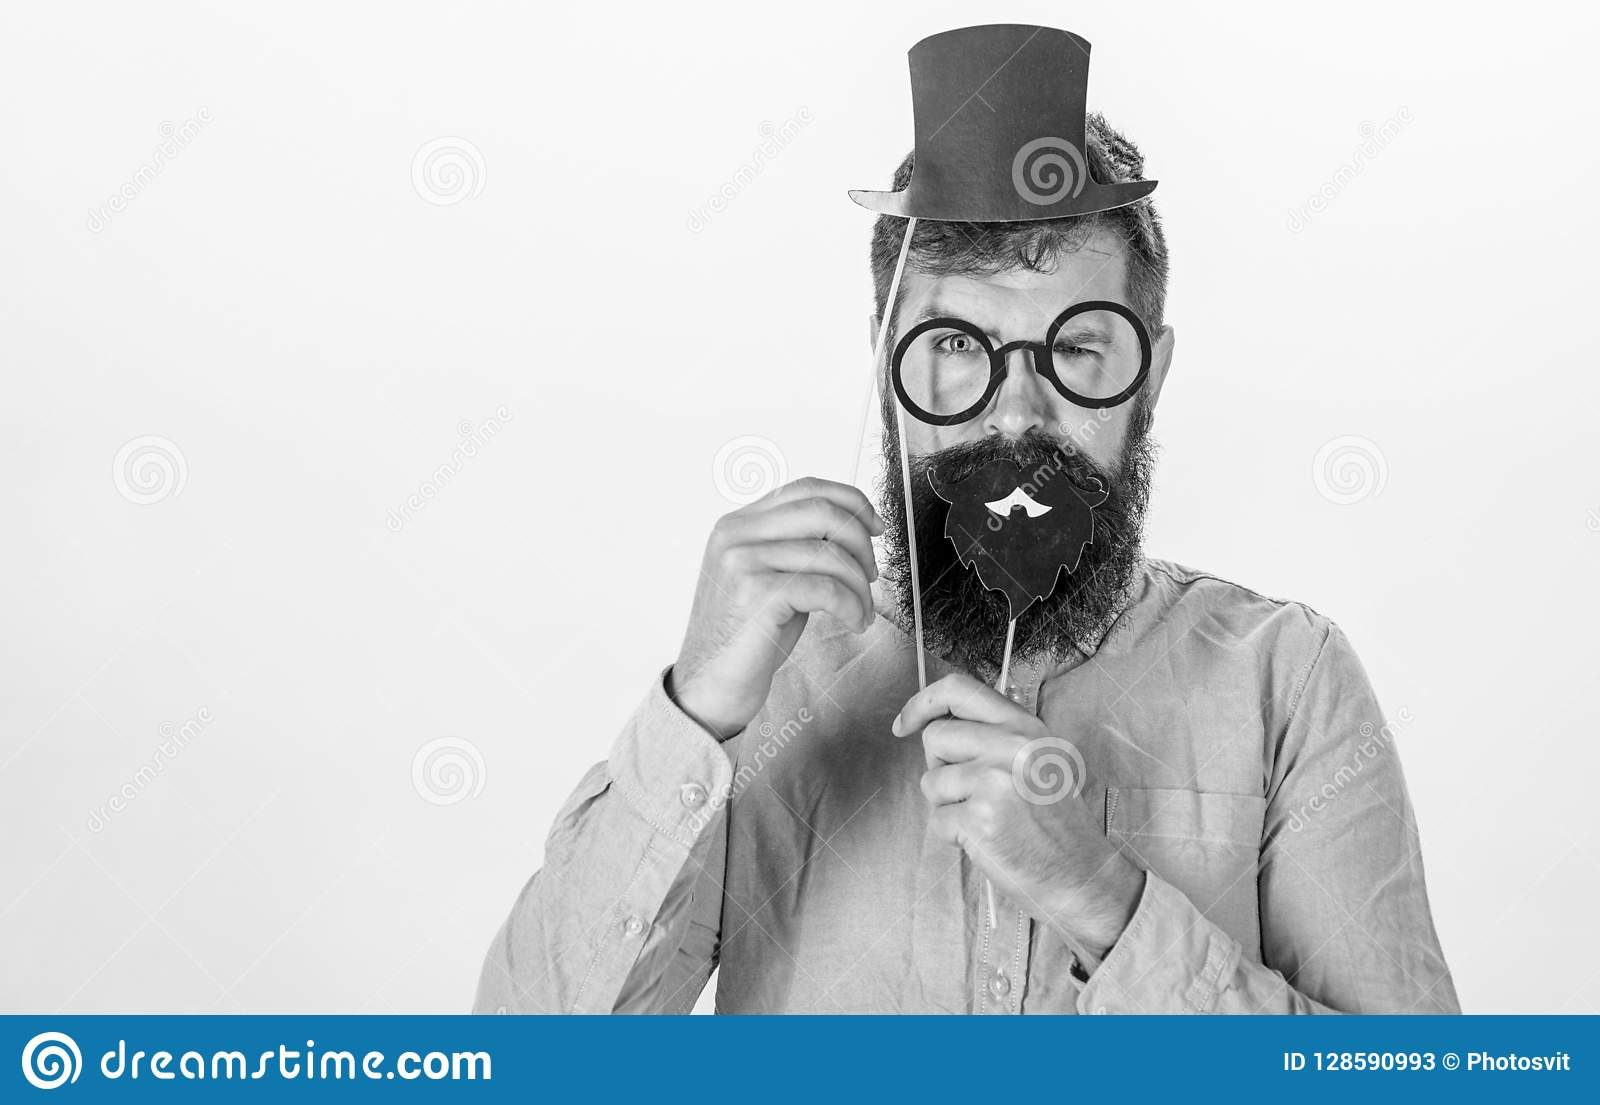 3ebeae35 Dressing well makes you seem more intelligent. Tricks to seem more  intelligent. Man bearded hipster cardboard top hat and eyeglasses to look  smarter white ...